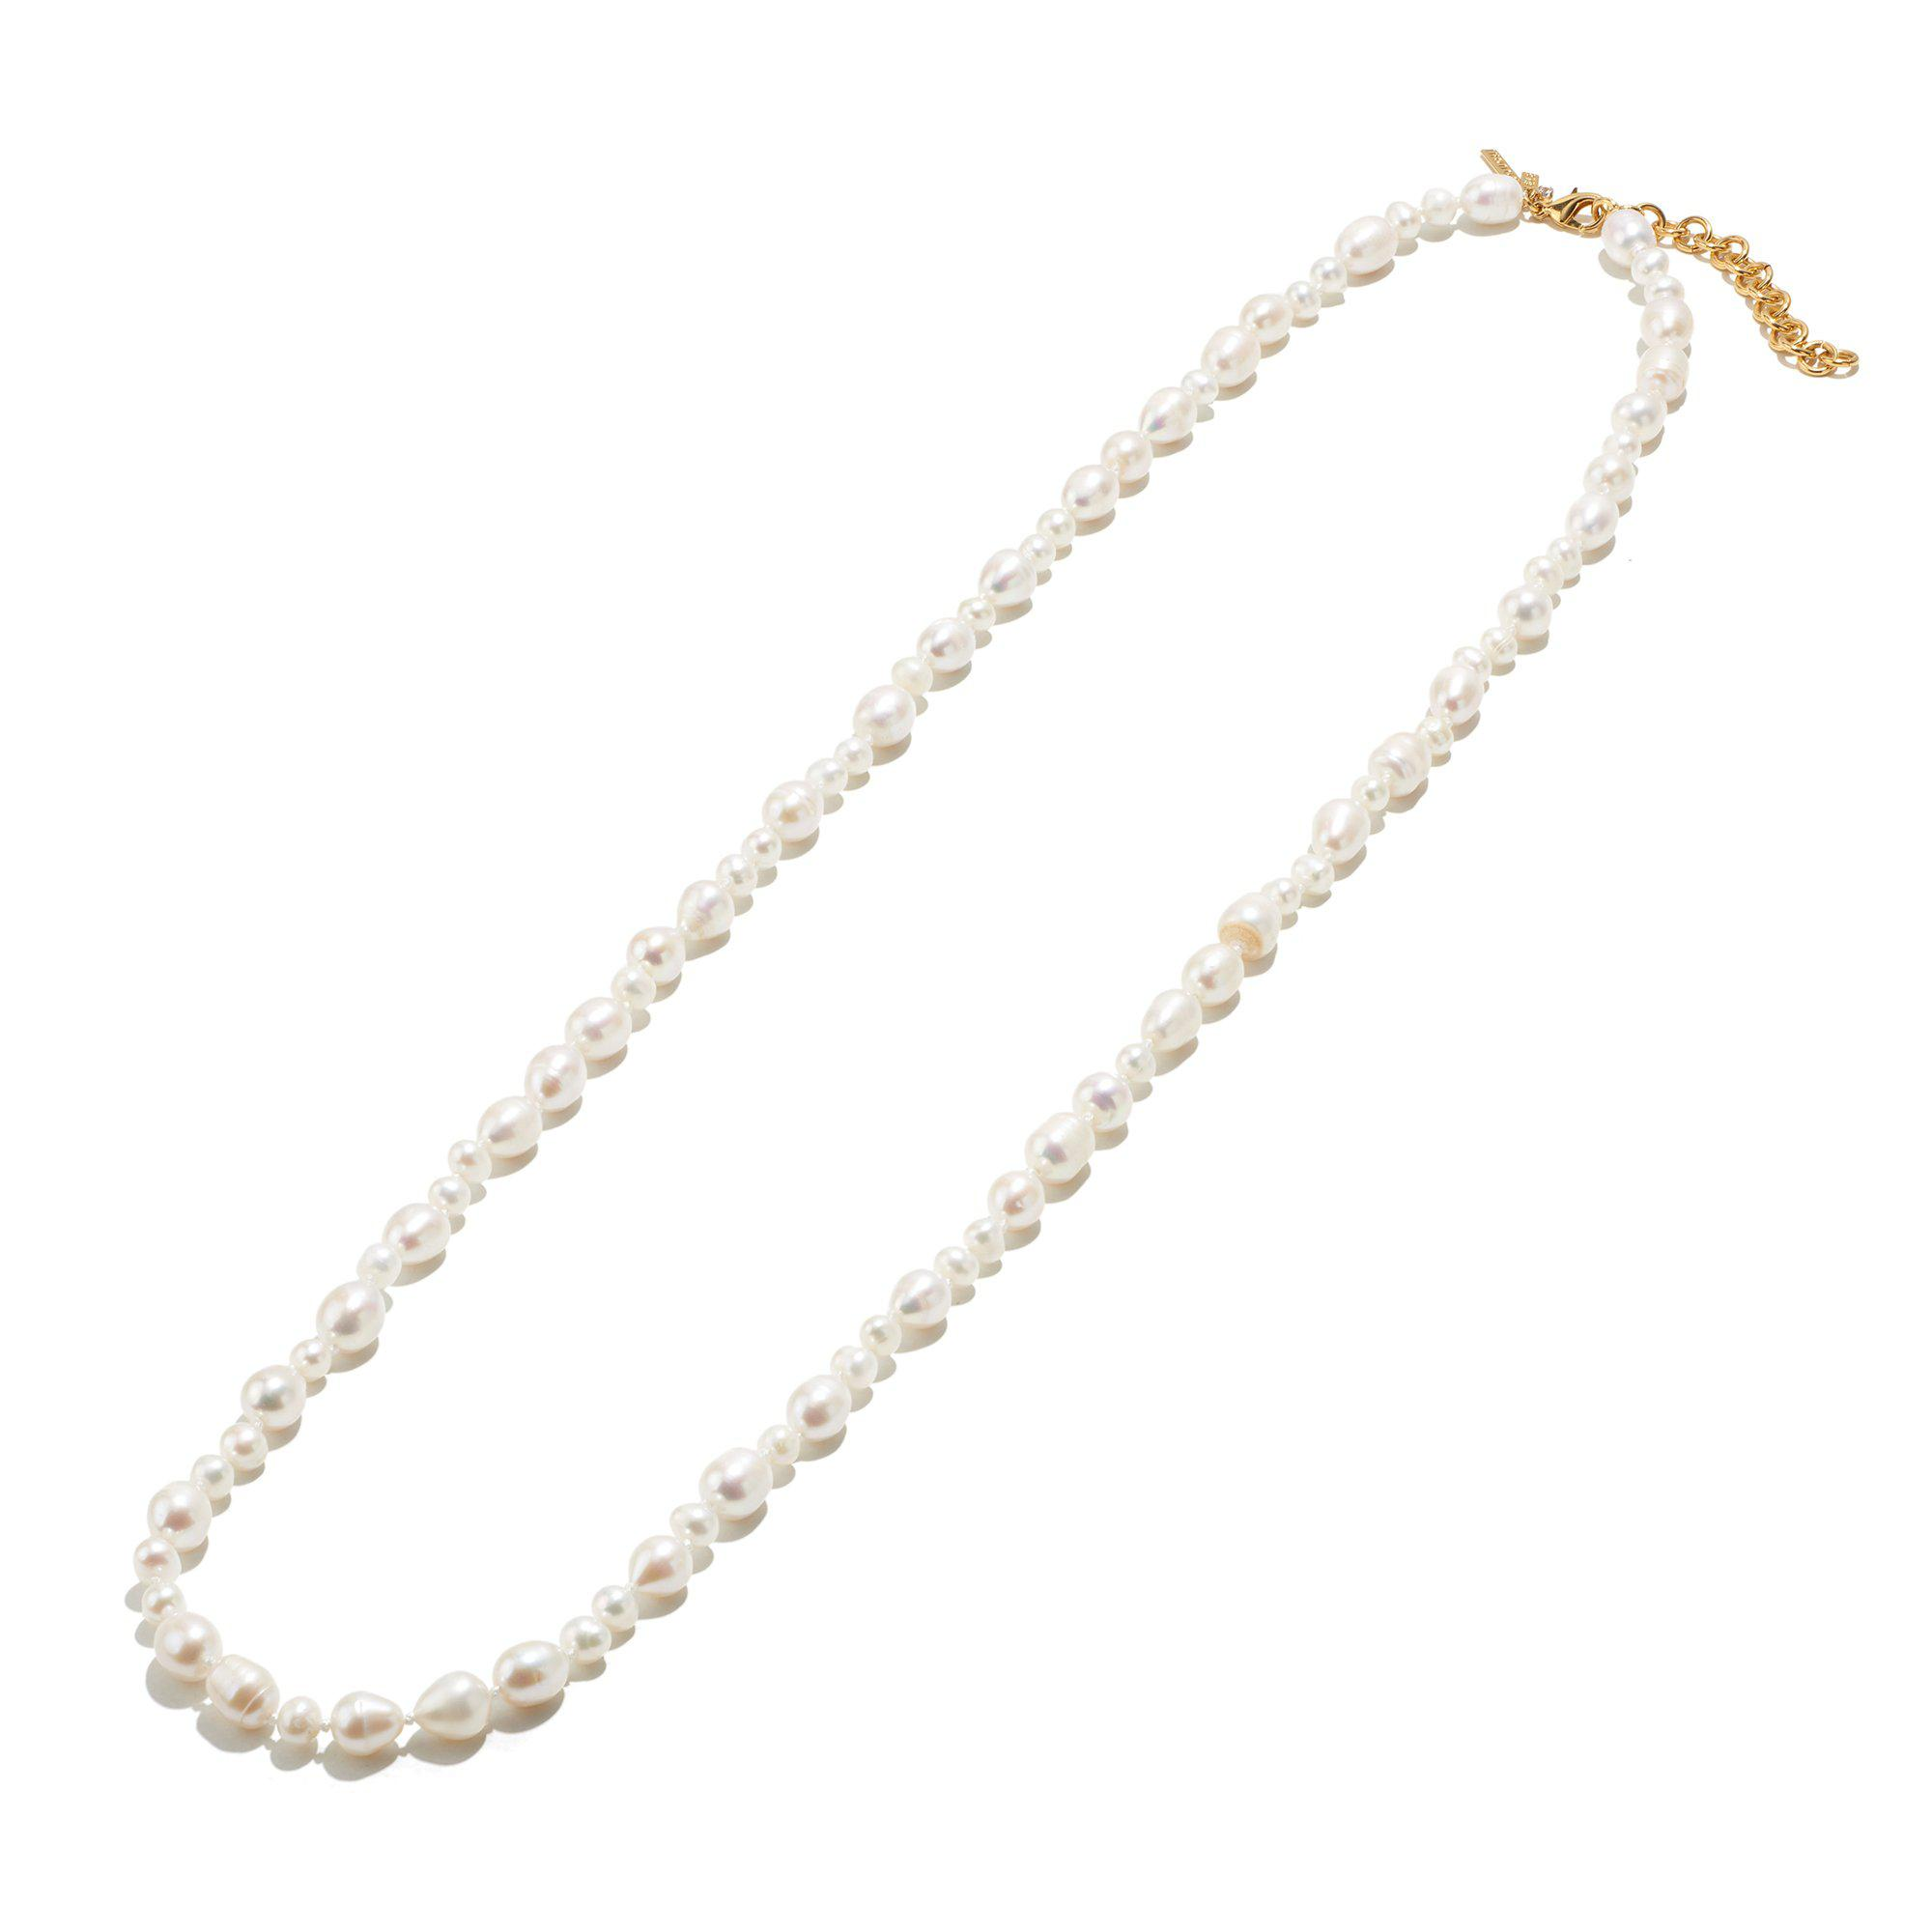 FRESHWATER PEARL ROPE LENGTH NECKLACE